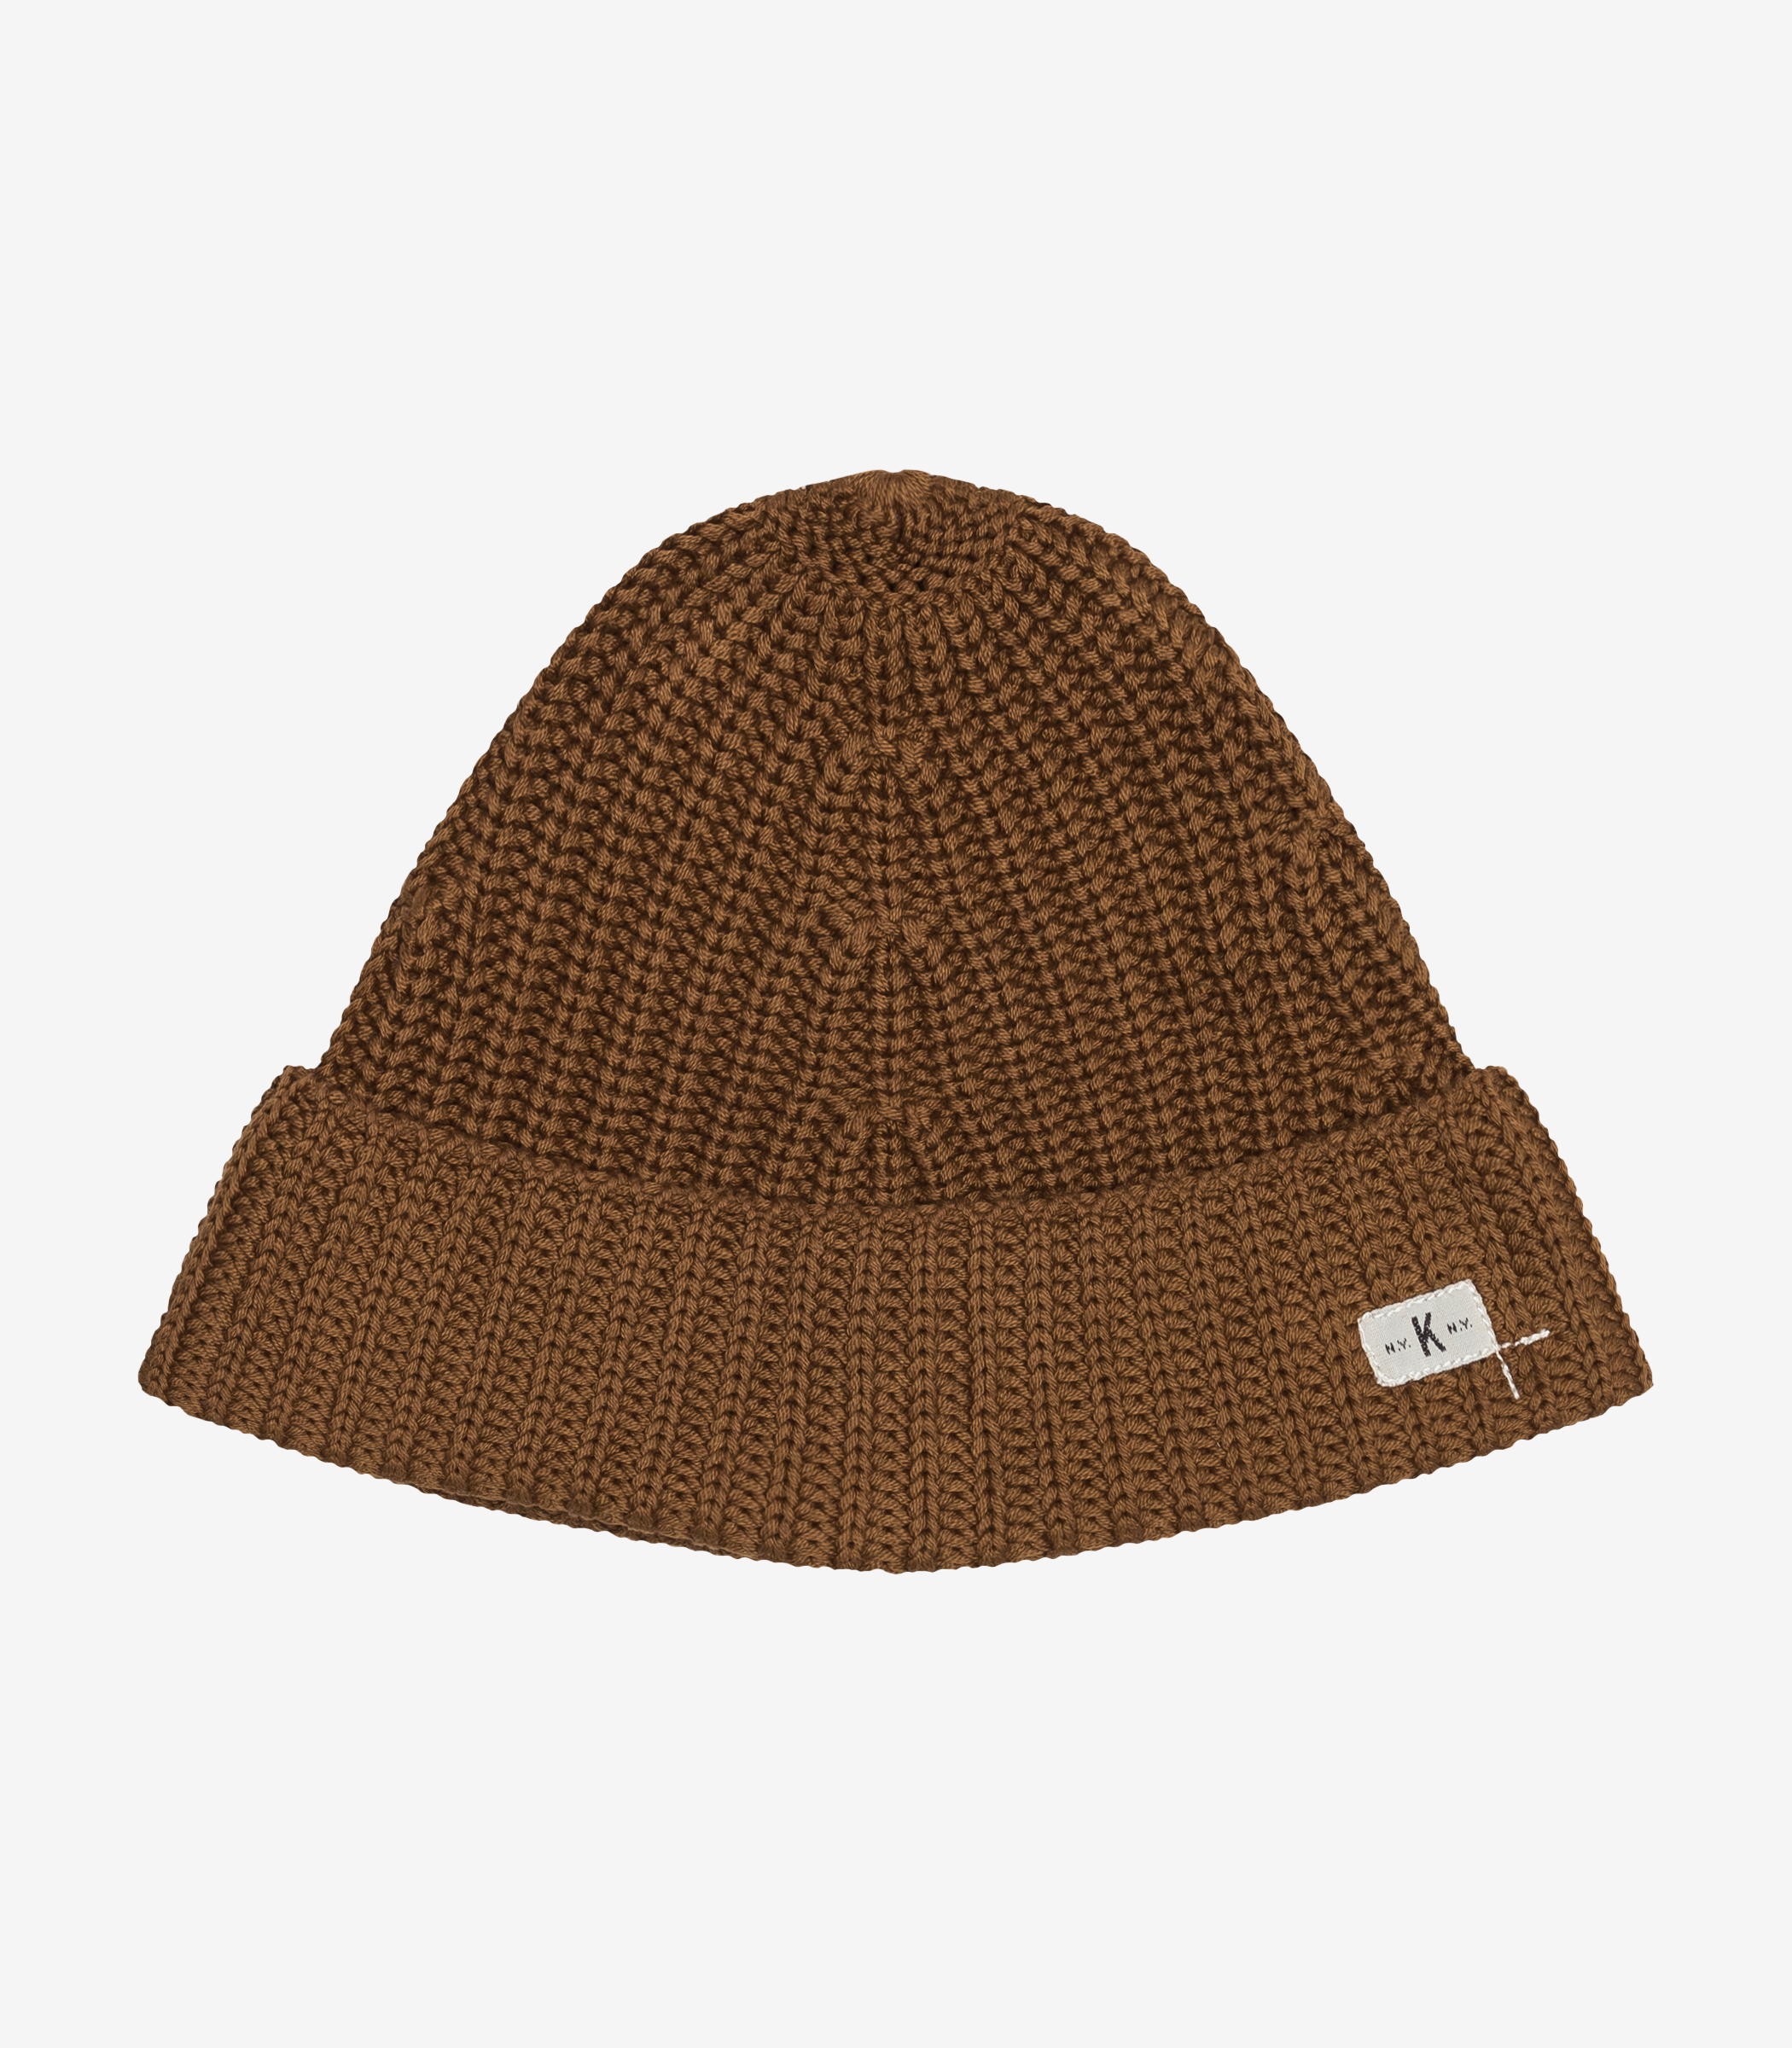 brown hat product image